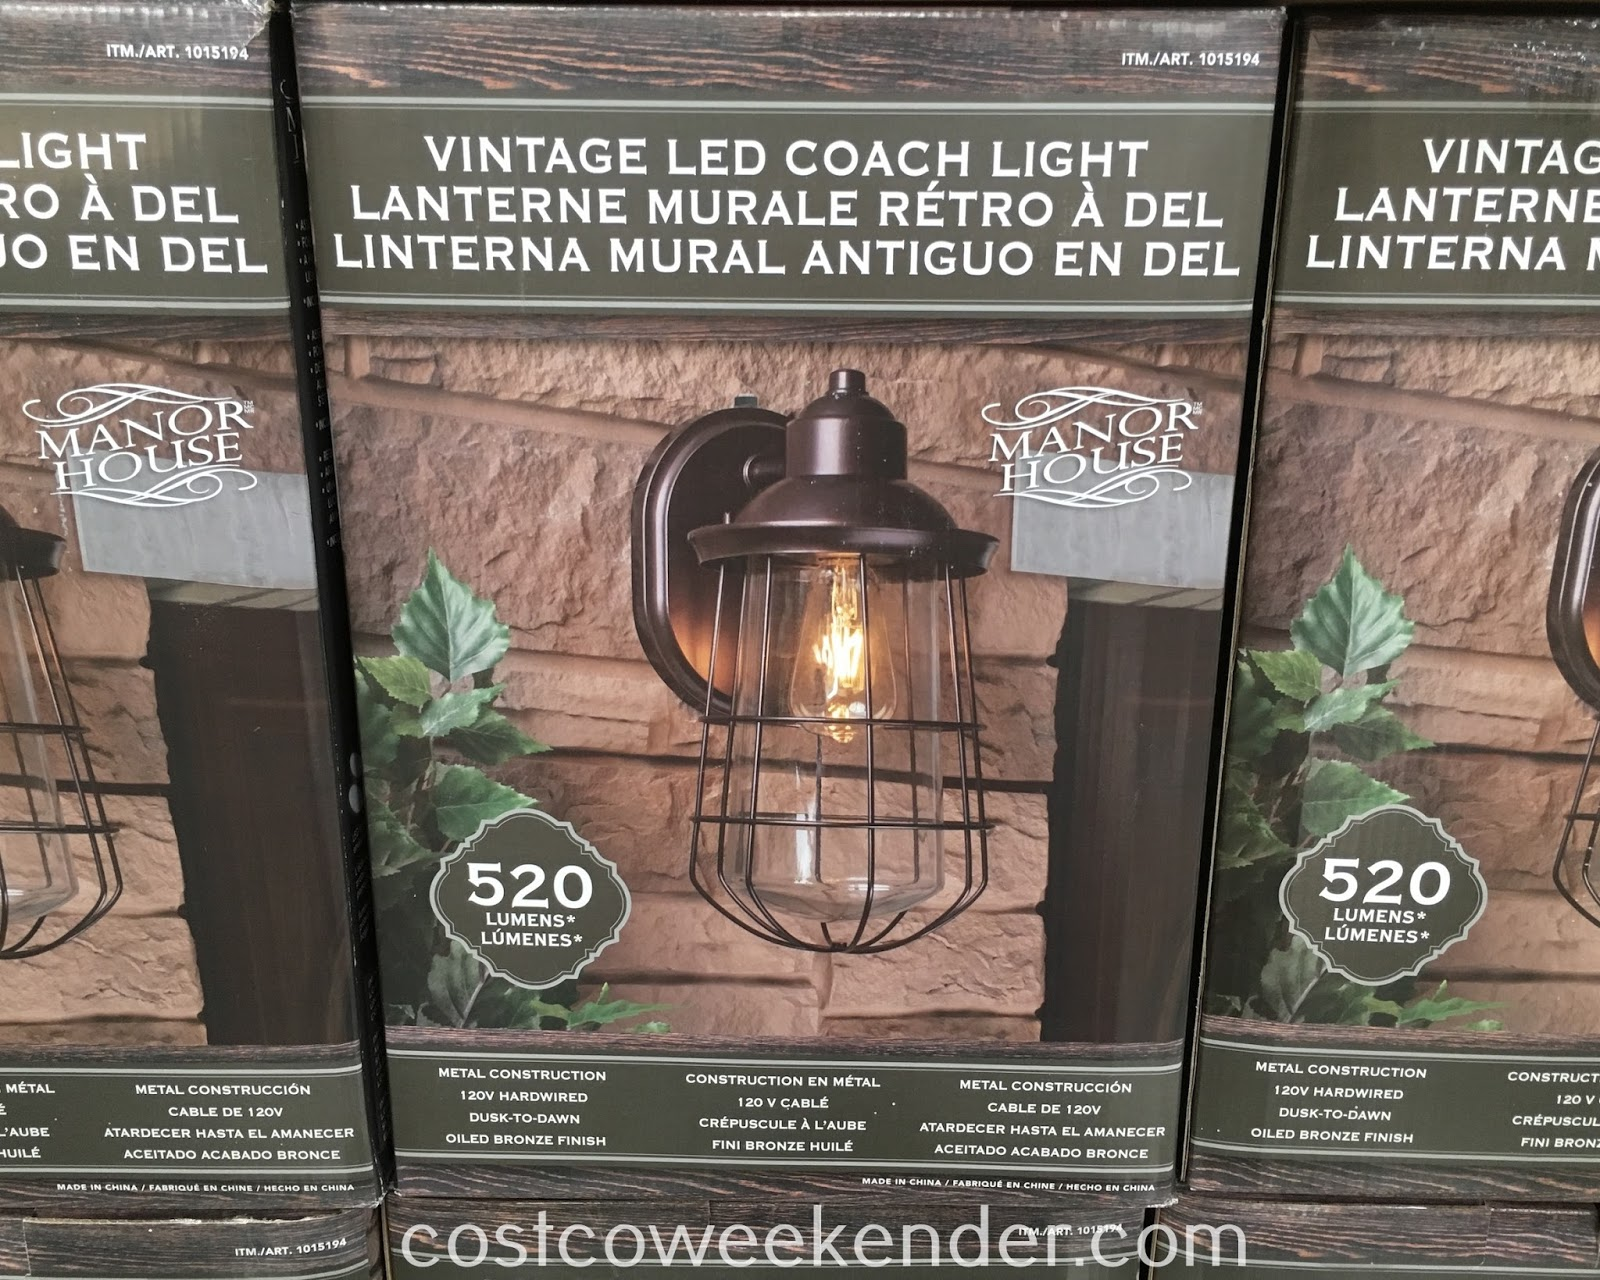 Add some light to brighten the outside of your home with the Manor House Vintage LED Coach Light